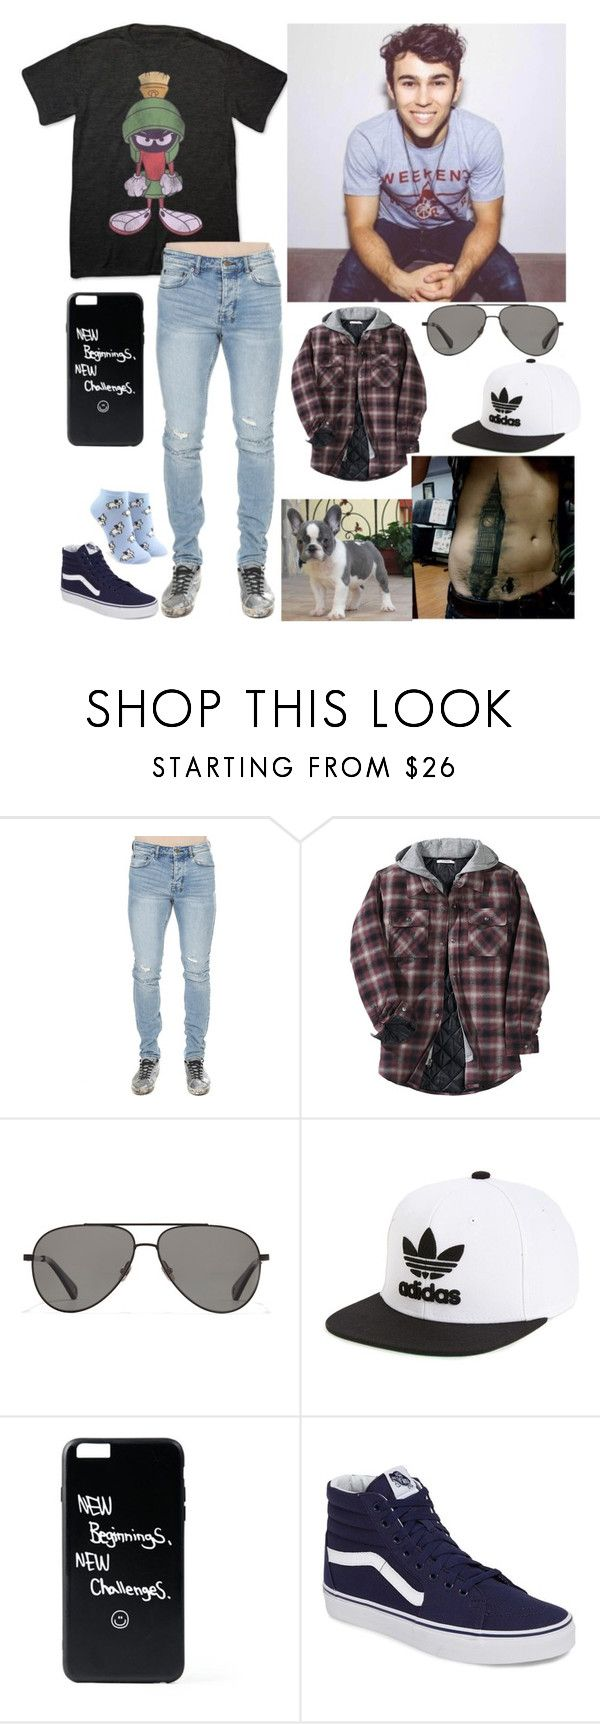 """Nicholas (19)"" by manniegk ❤ liked on Polyvore featuring Fifth Sun, Other, Vilebrequin, adidas Originals, Vans, Forever 21, men's fashion and menswear"